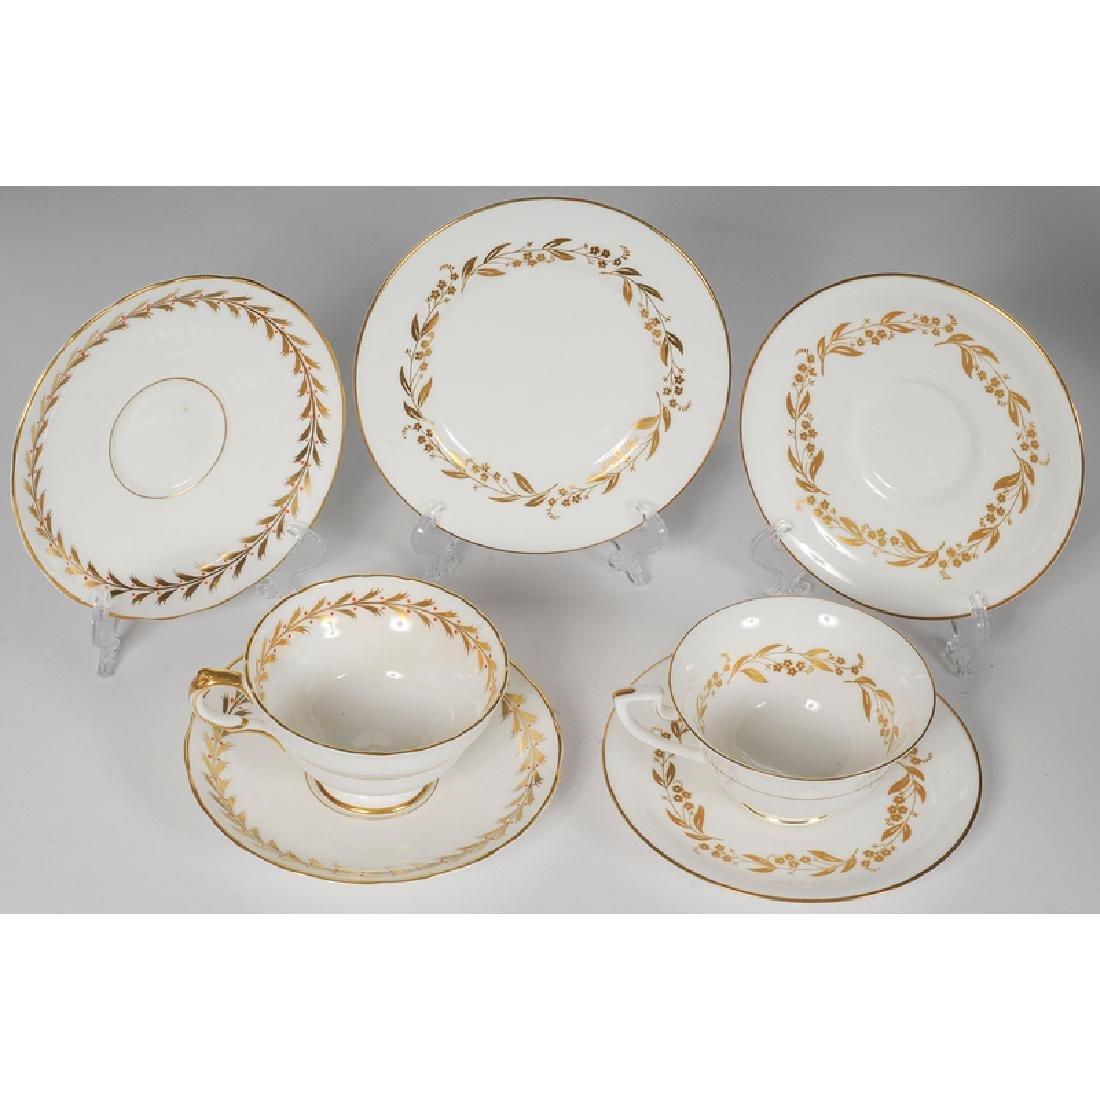 Worcester and Copeland Porcelain Tea Sets - 3